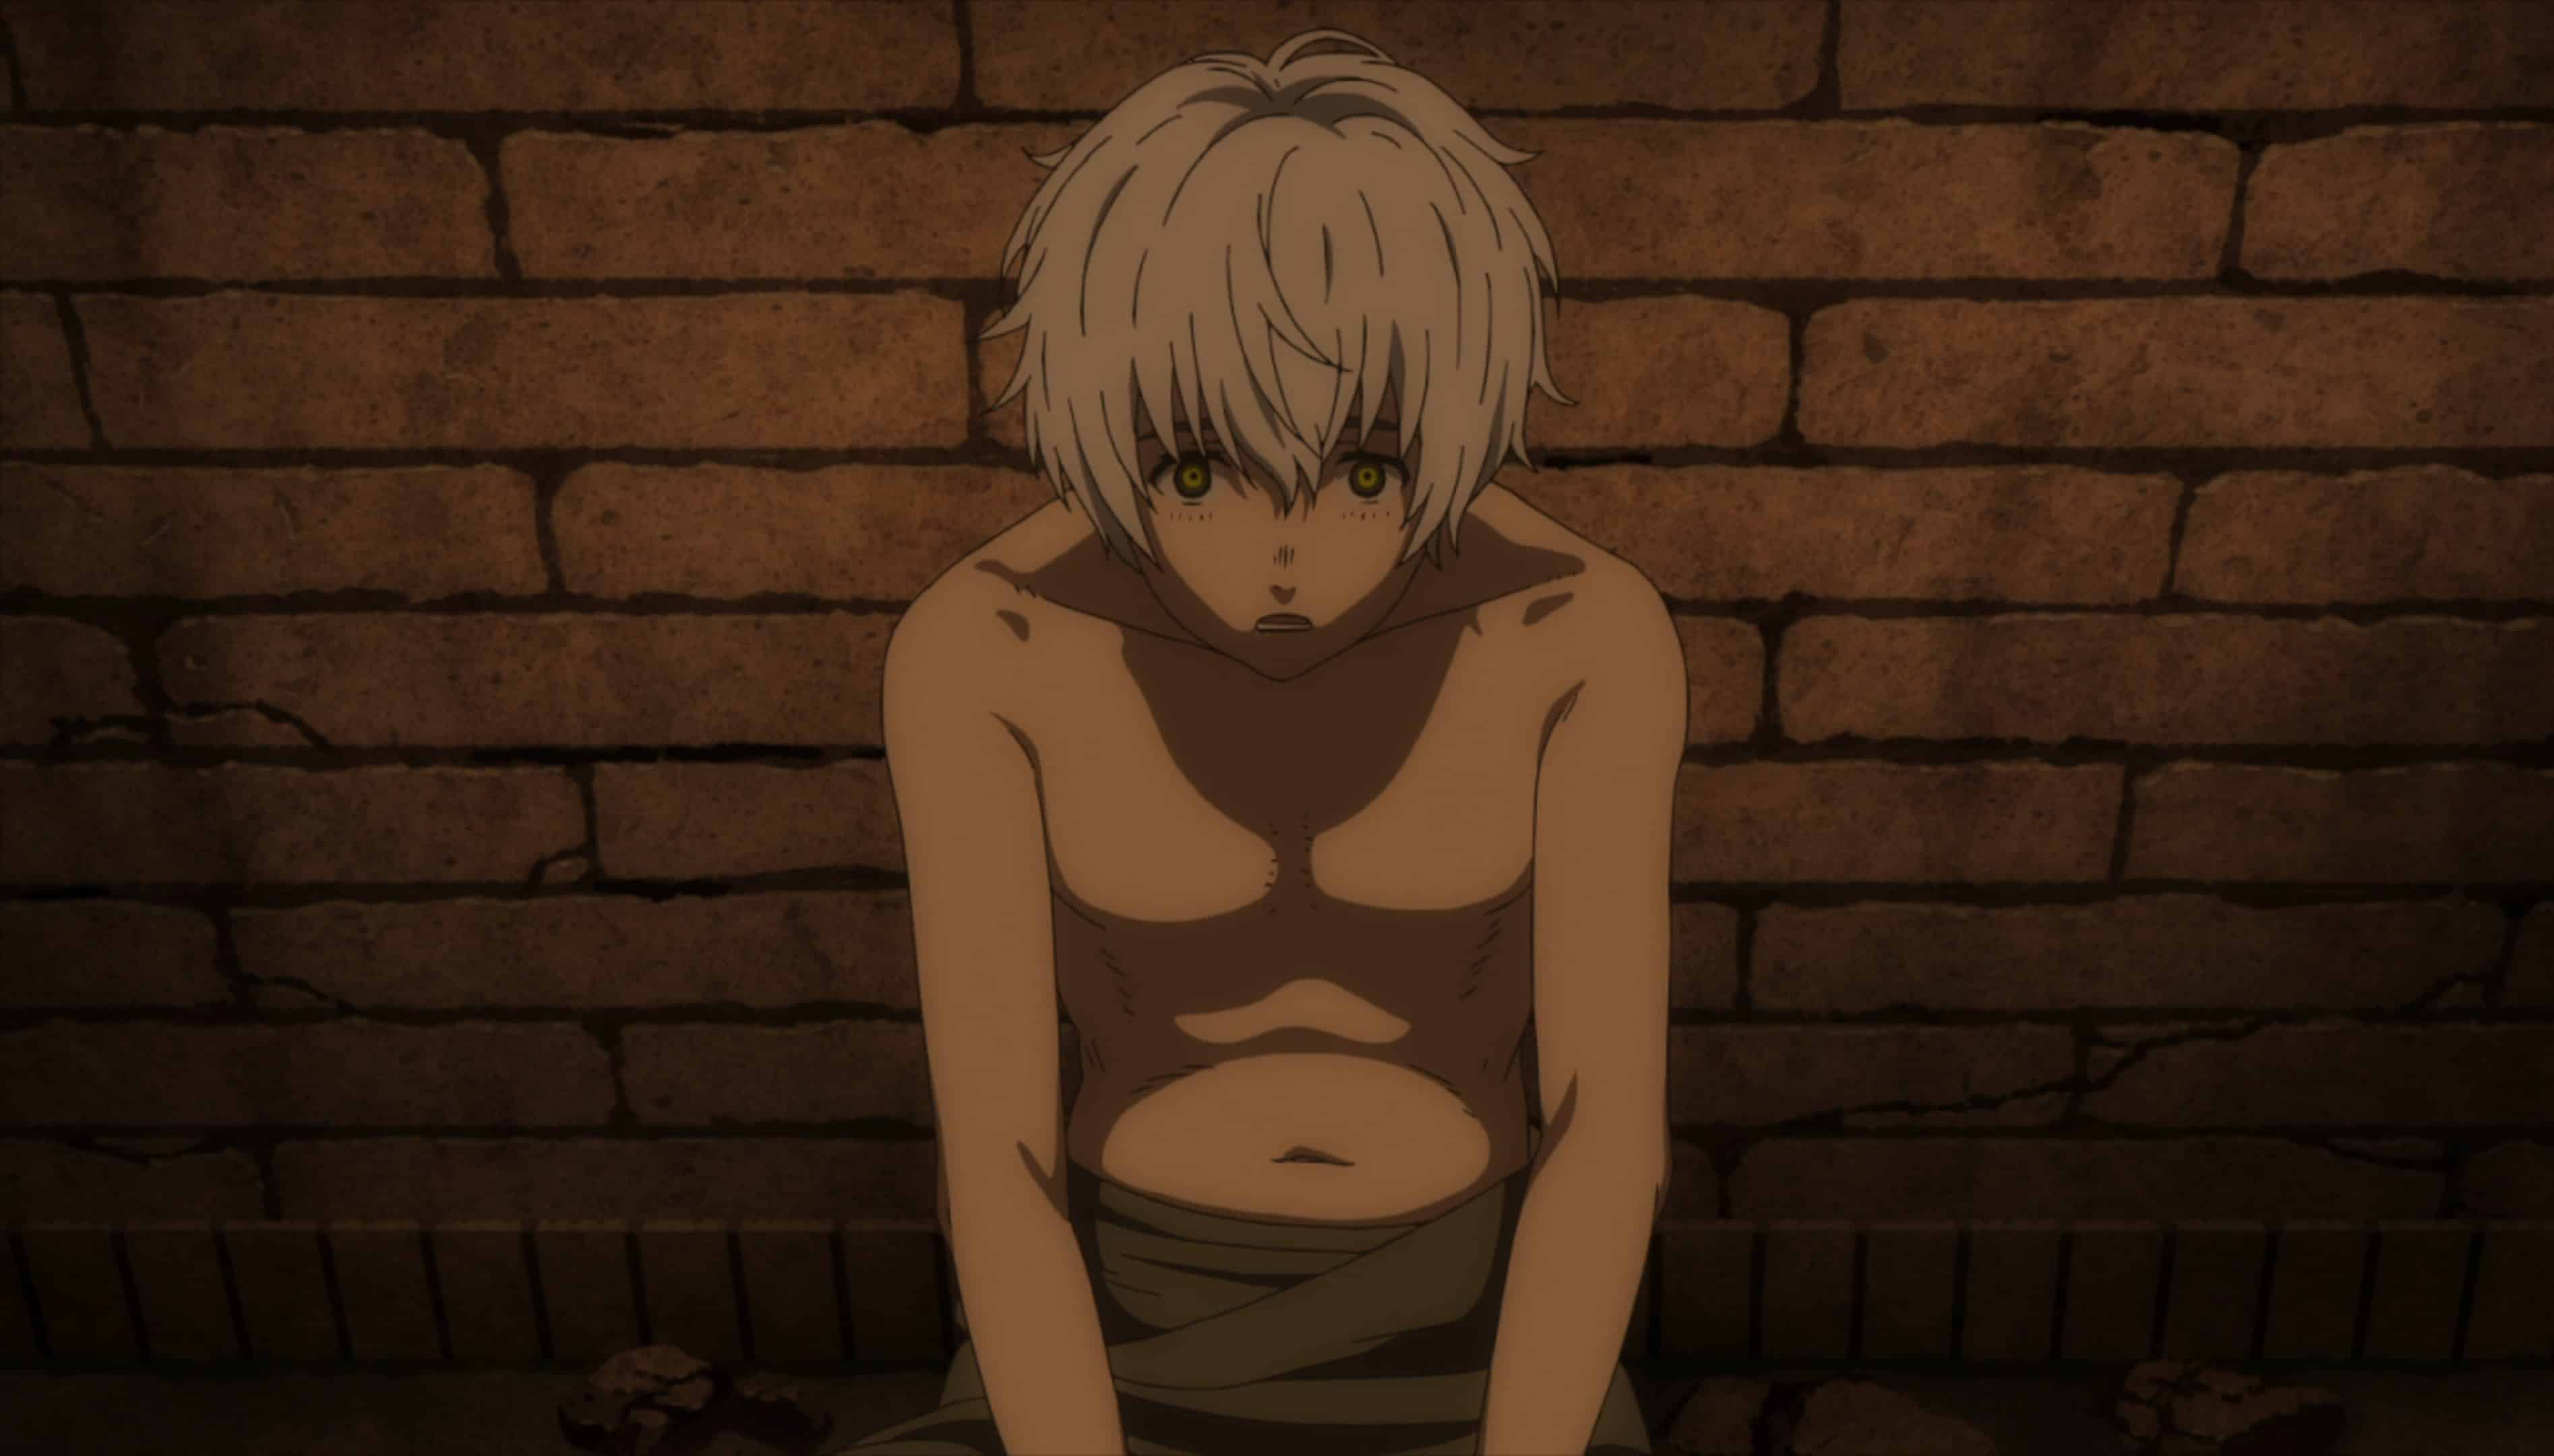 Fushi before he is tortured and experimented on